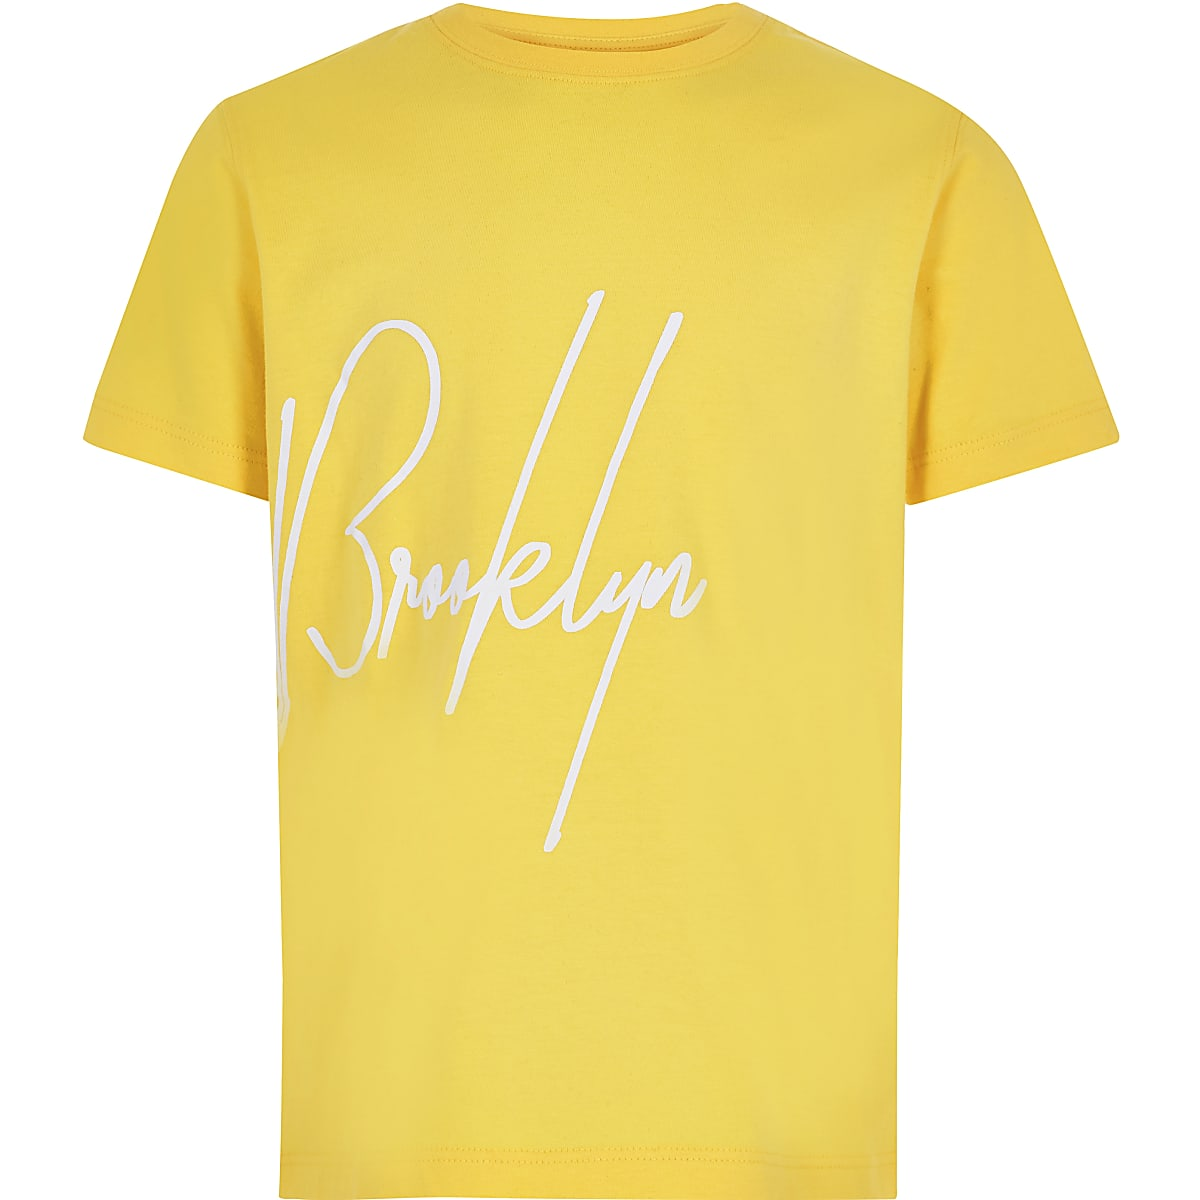 Boys yellow 'Brooklyn' T-shirt